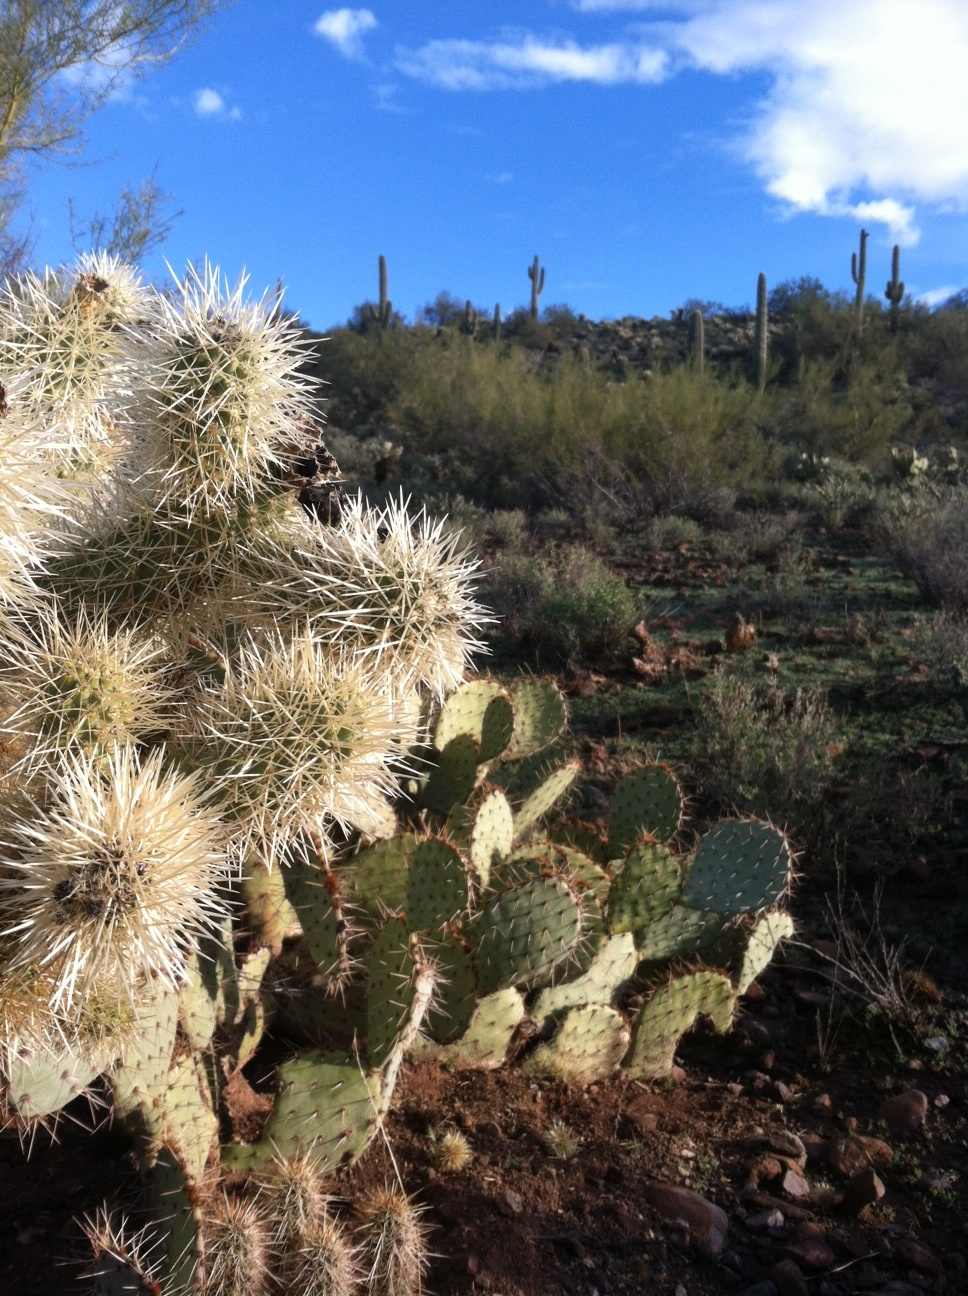 Cholla and Prickly pear